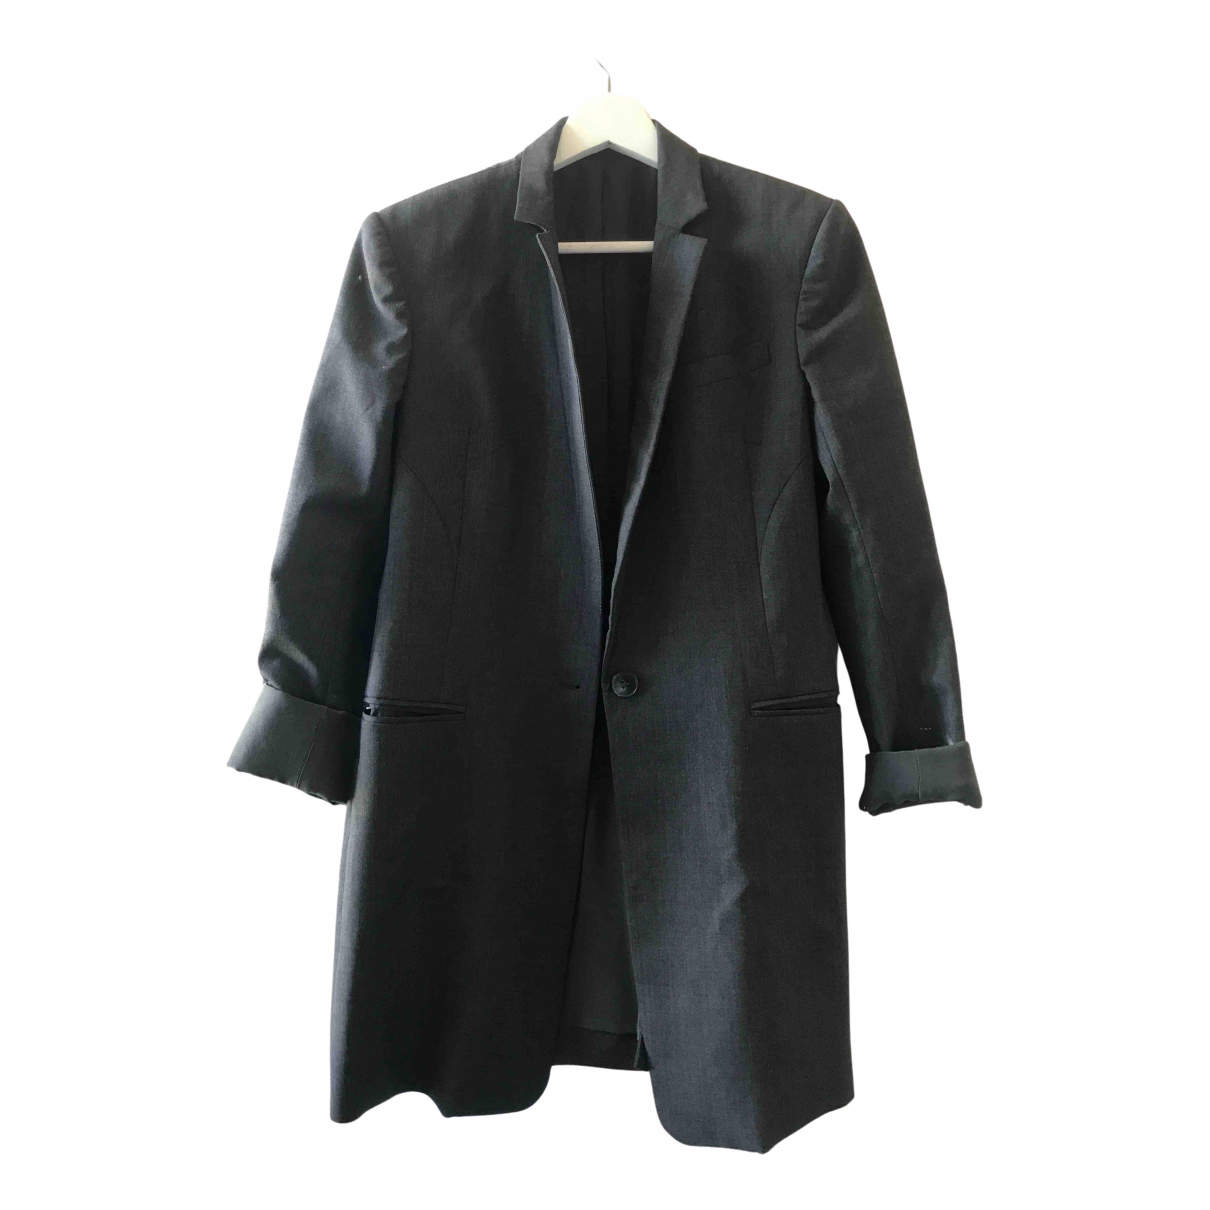 Theory \N Anthracite Wool jacket for Women 40 IT